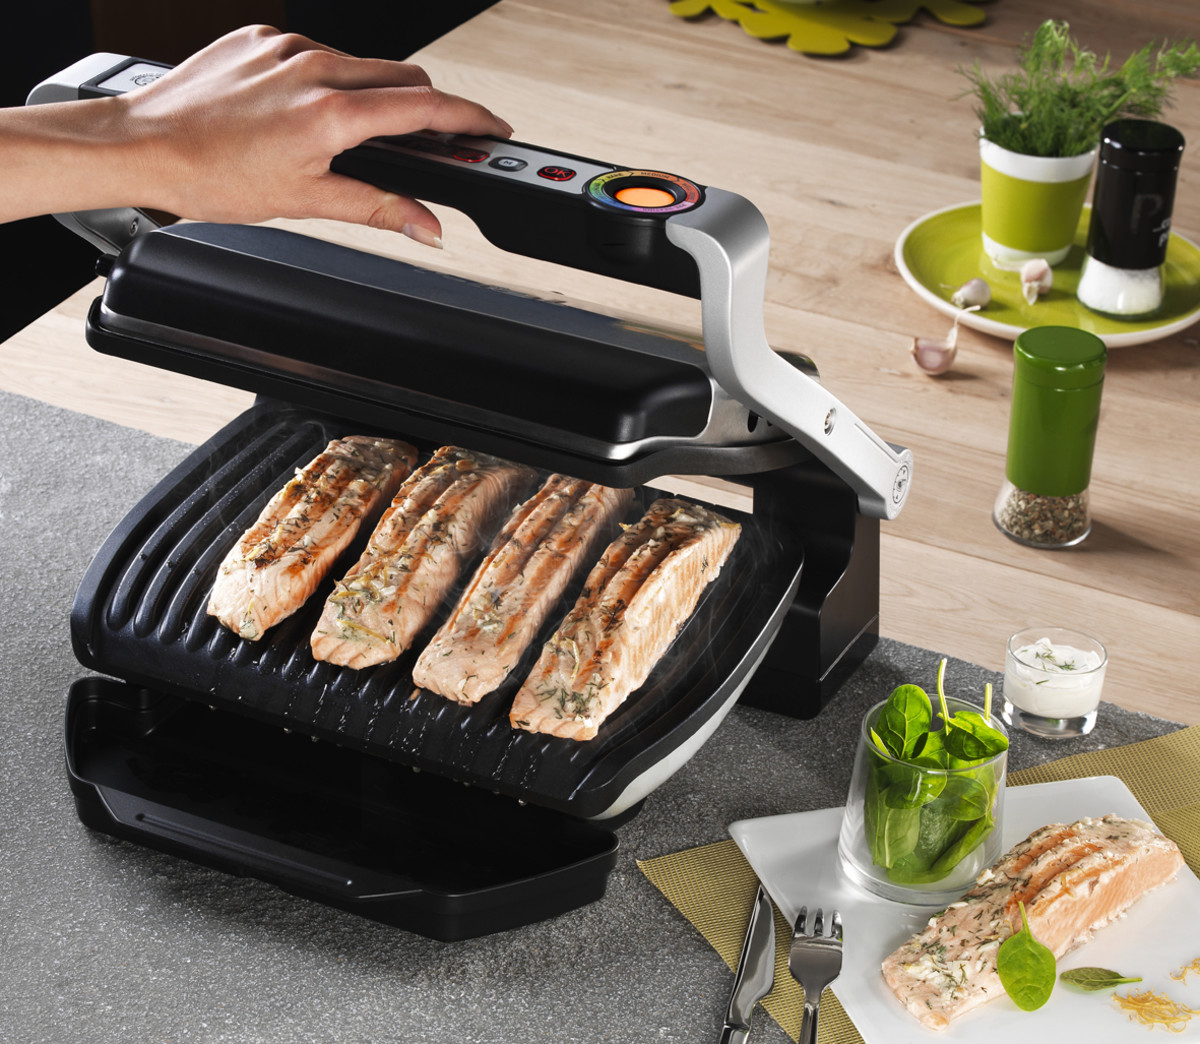 TF-KIT_PHOTOS-GRILLS-OPTIGRILL-4